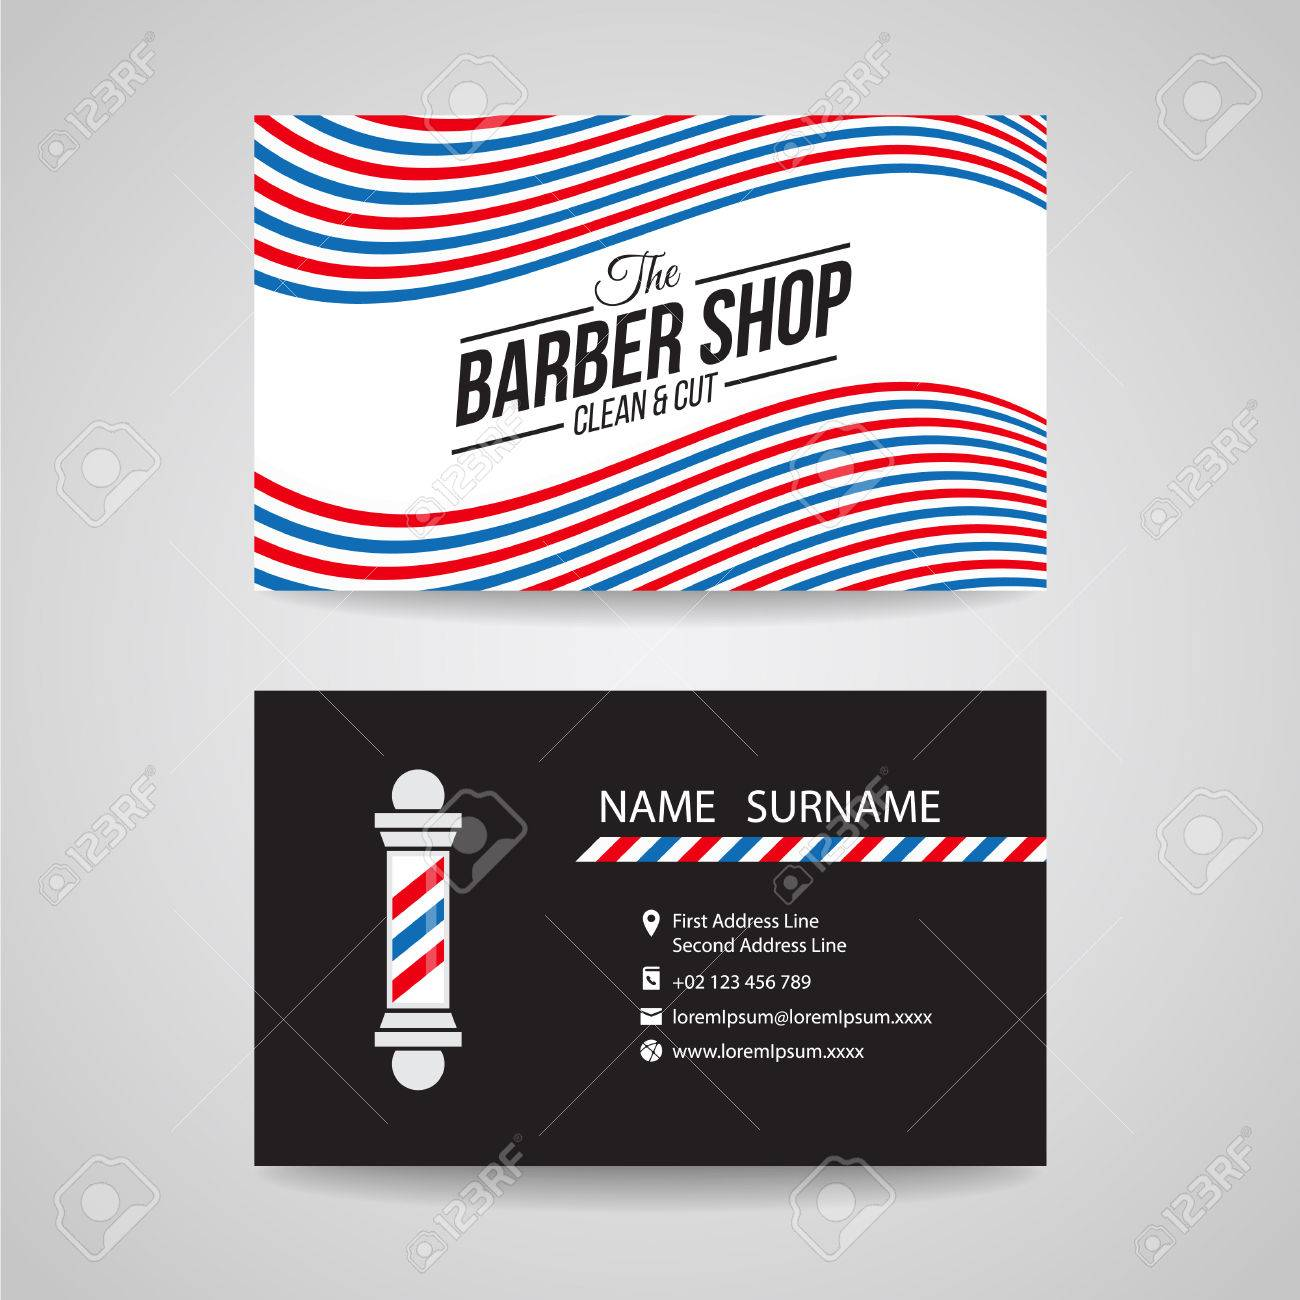 Barber Shop Business Card Templates Images Templates Example - Barber business card template